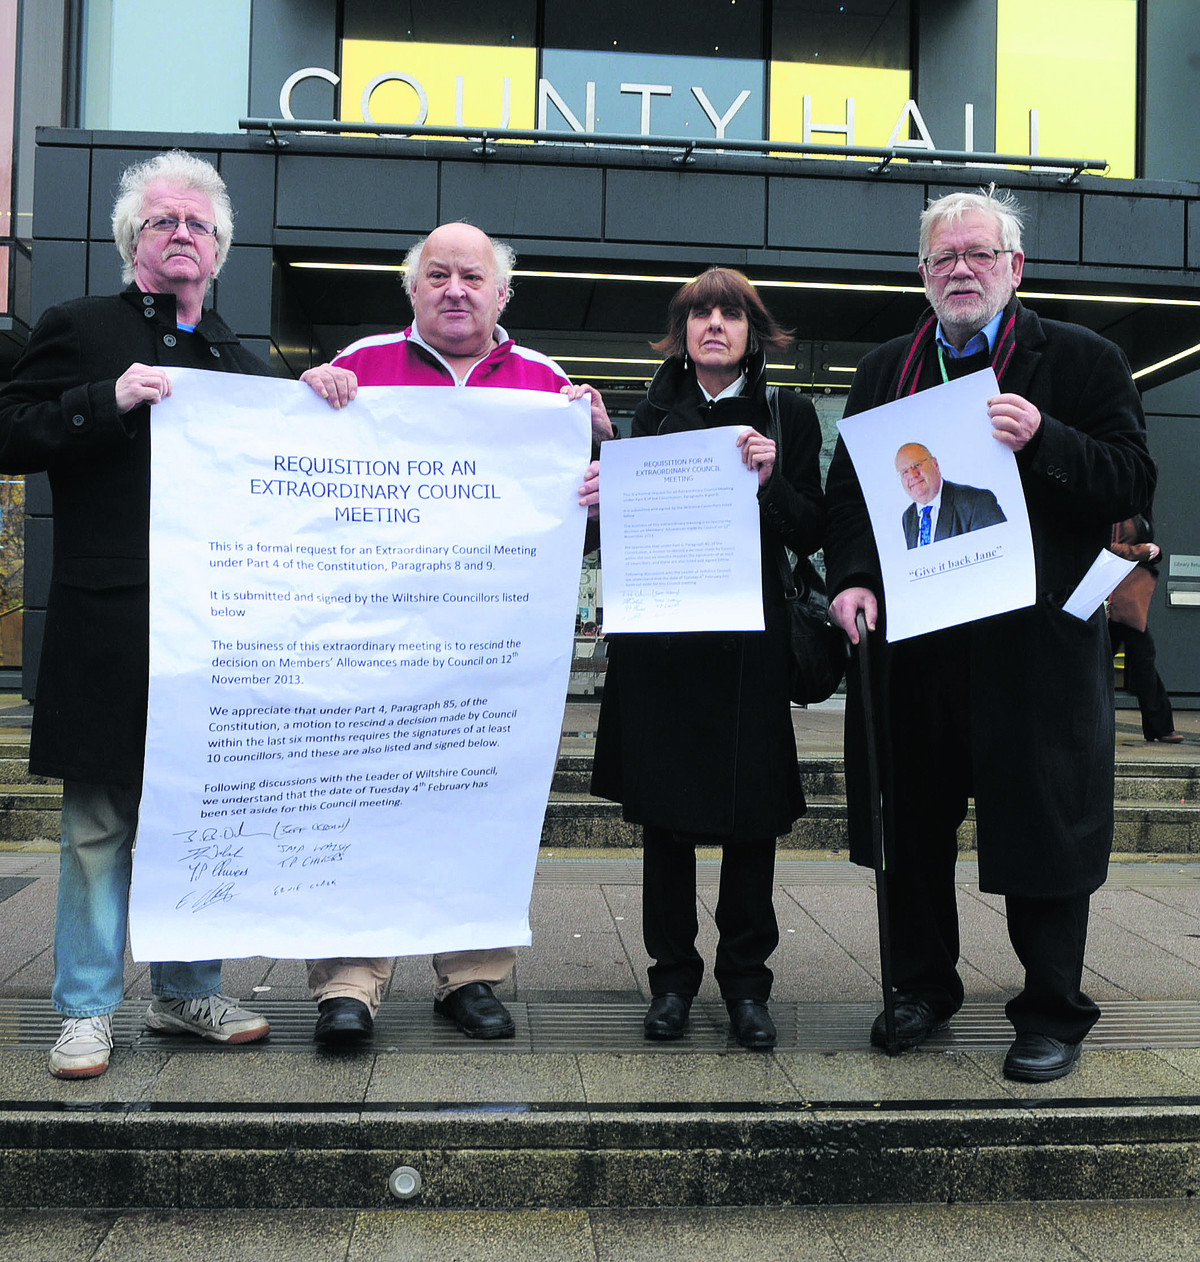 Independent councillors Ernie Clark, Terry Chivers, Helen and Jeff Osborn call for Wiltshire Council to rescind the expenses increase